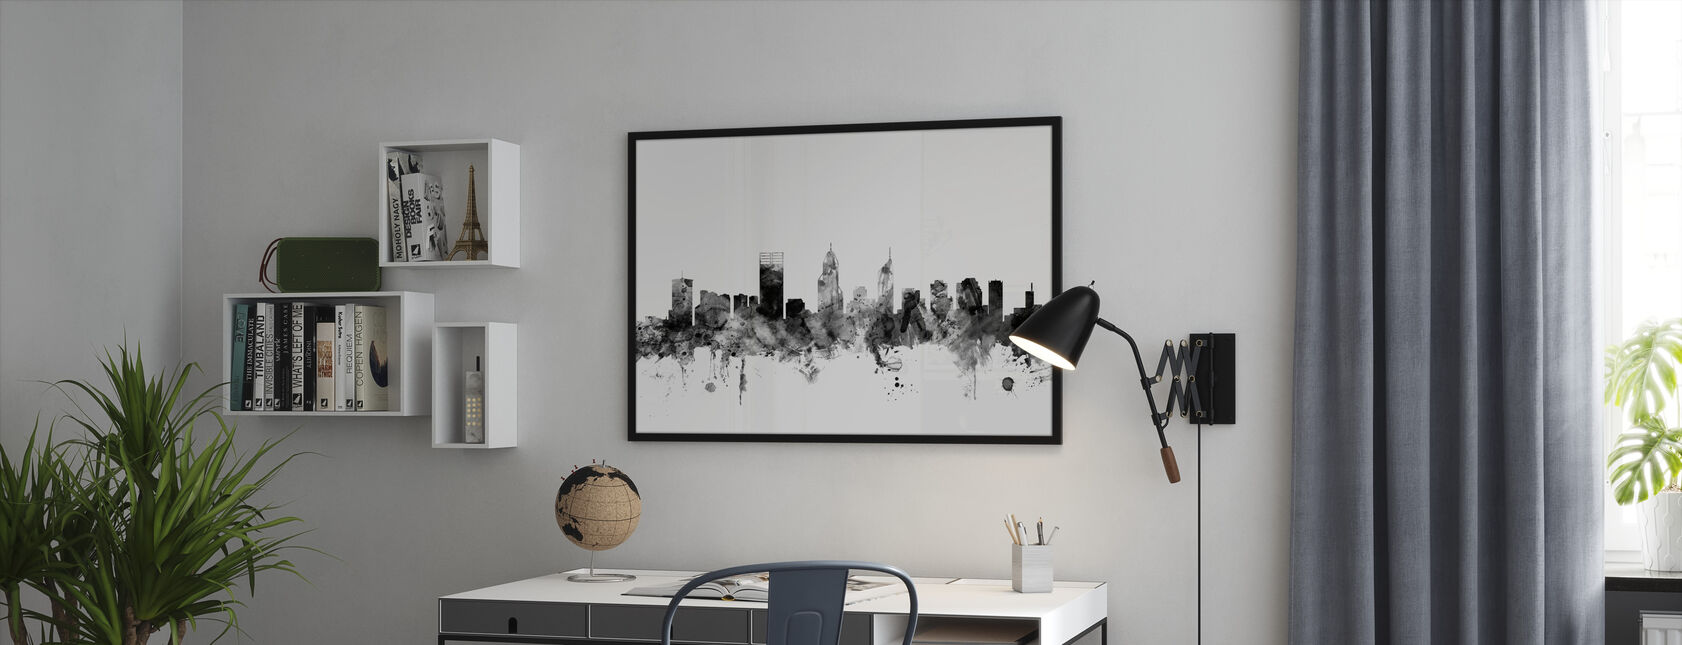 Perth Australia Skyline Black - Framed print - Office